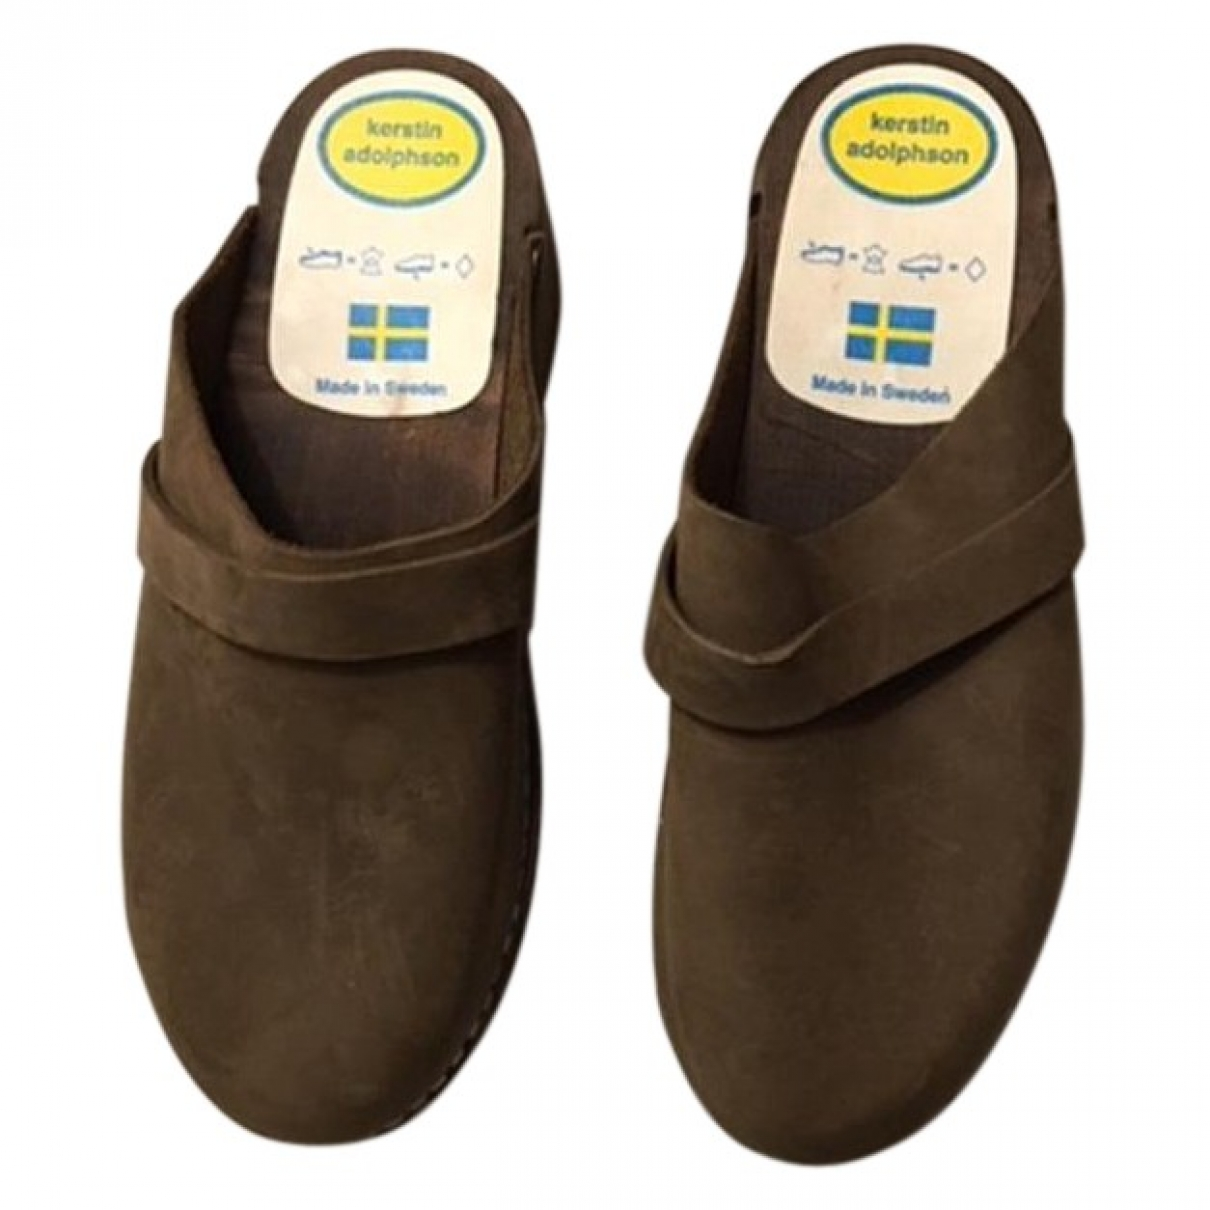 Kerstin Adolphson \N Brown Leather Mules & Clogs for Women 40 EU